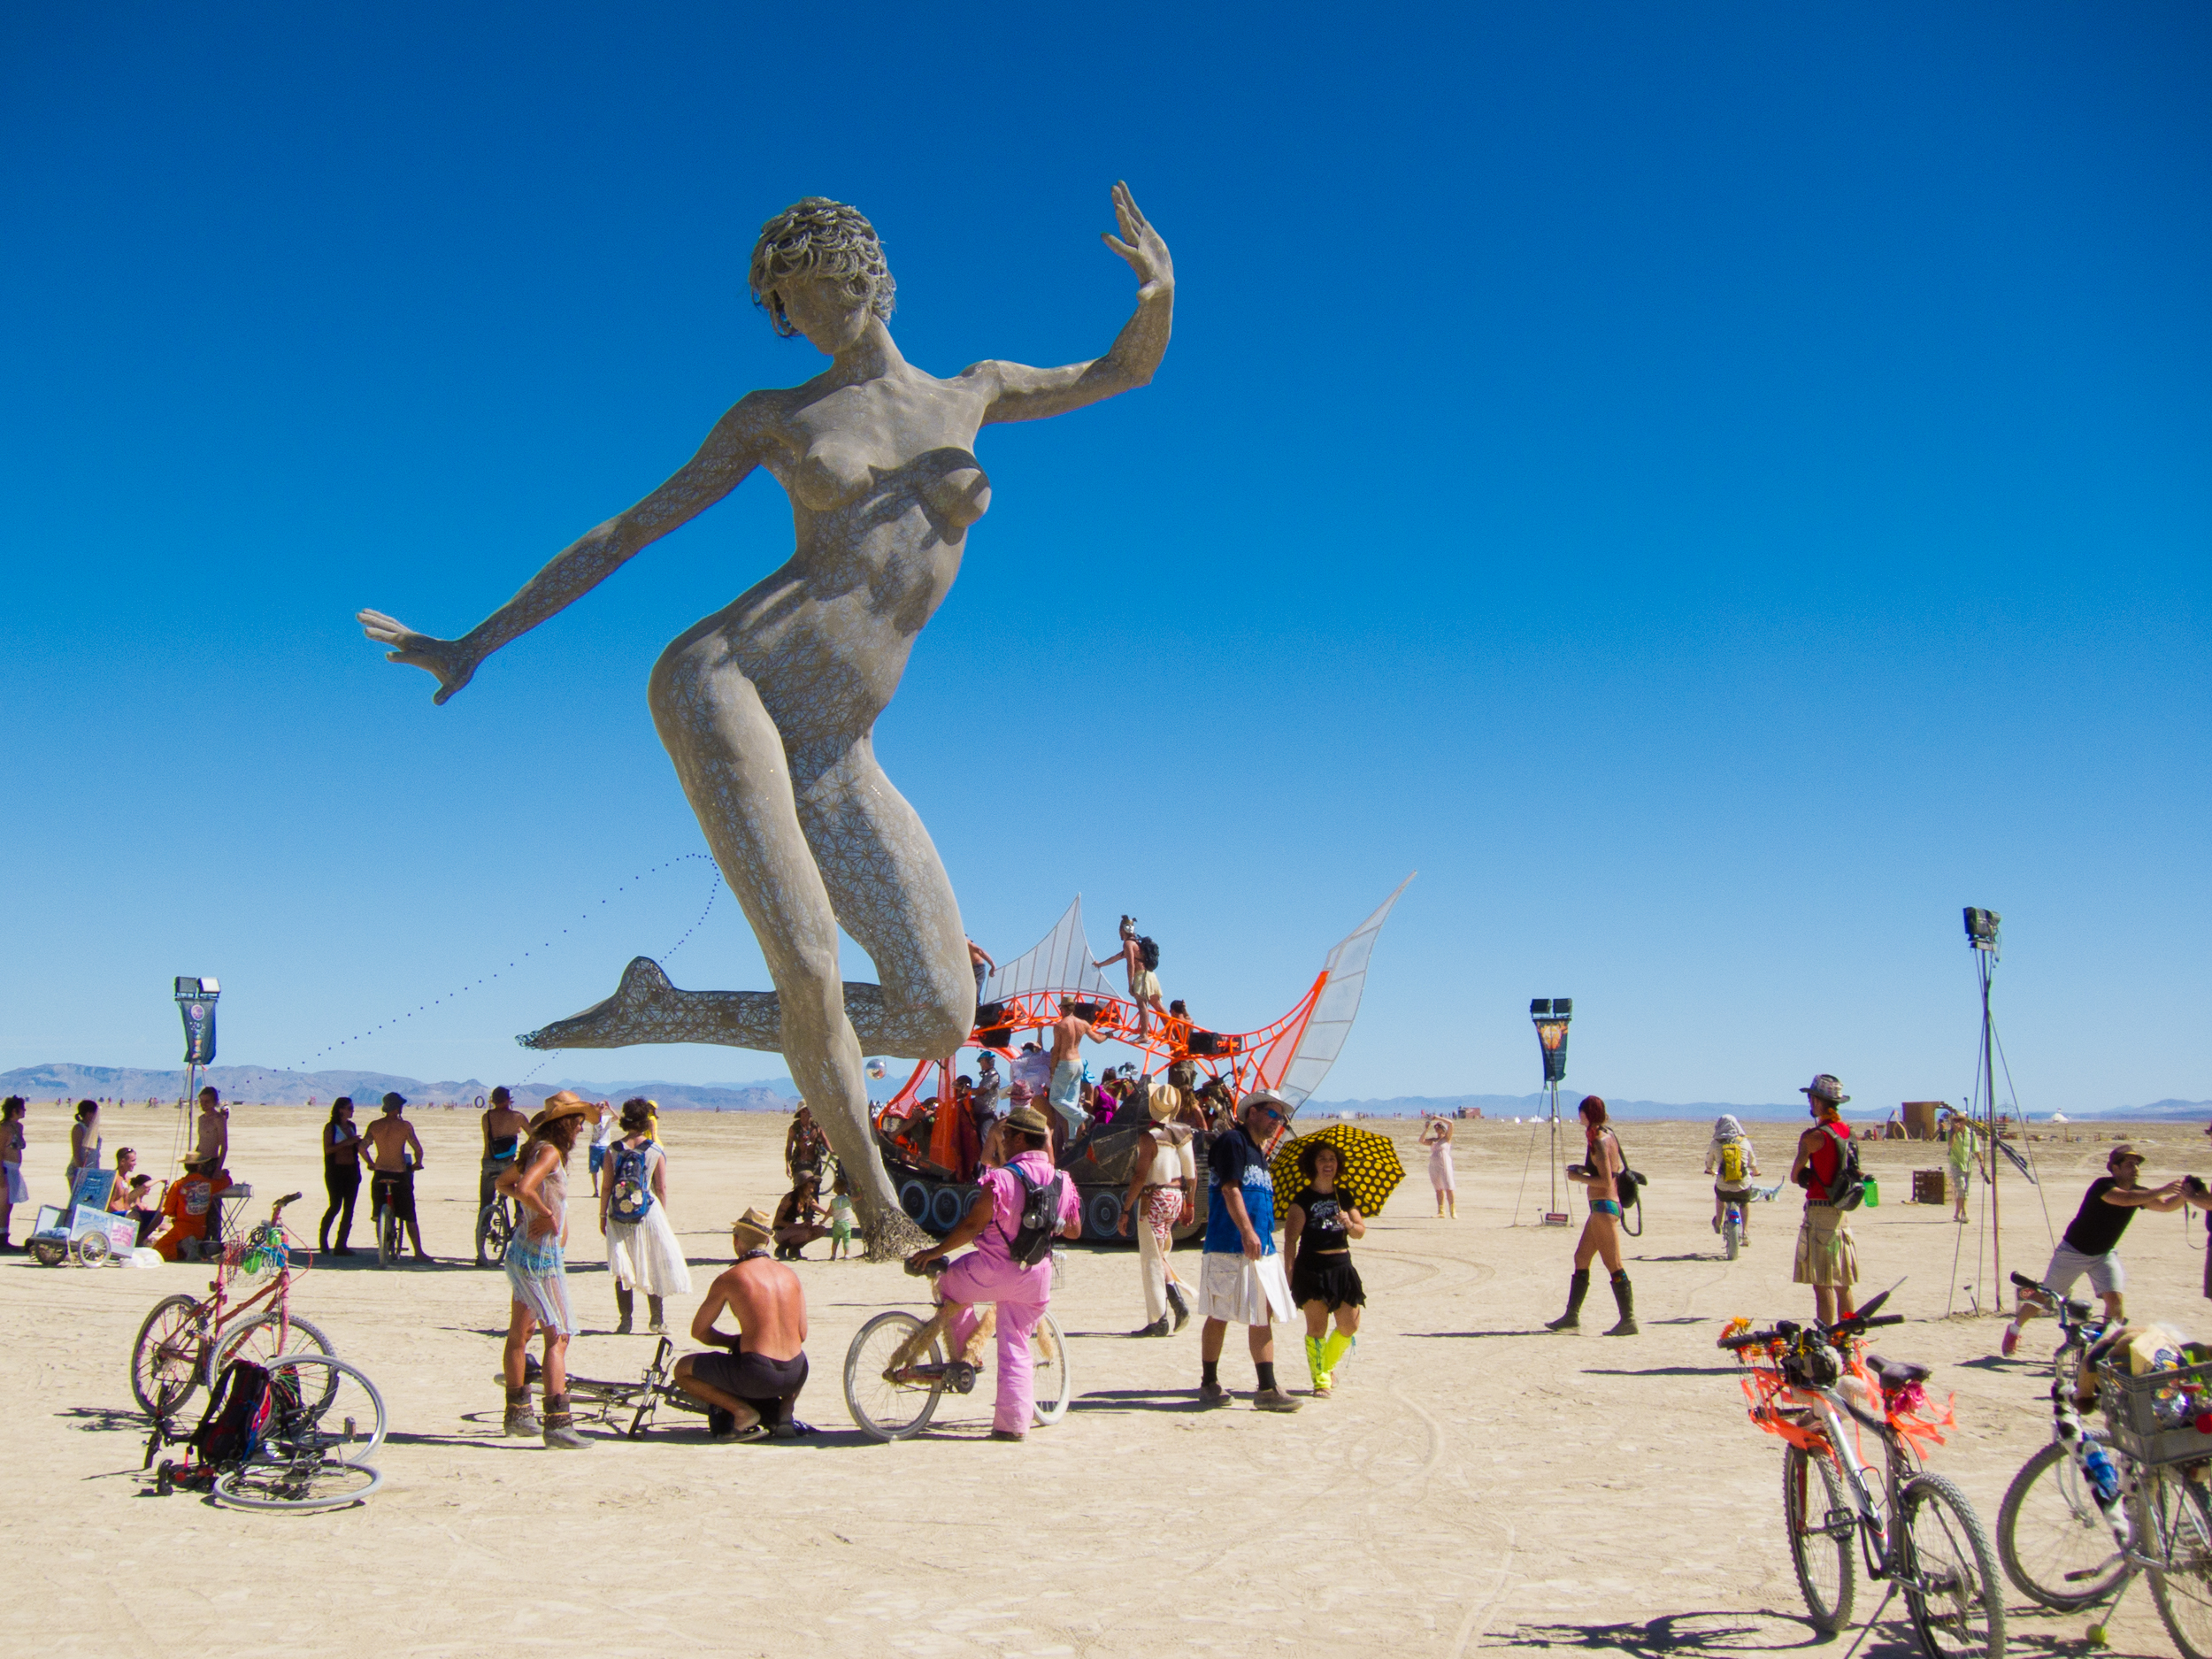 The Bliss Dance at Burning Man 2013 Photo: travelhyms